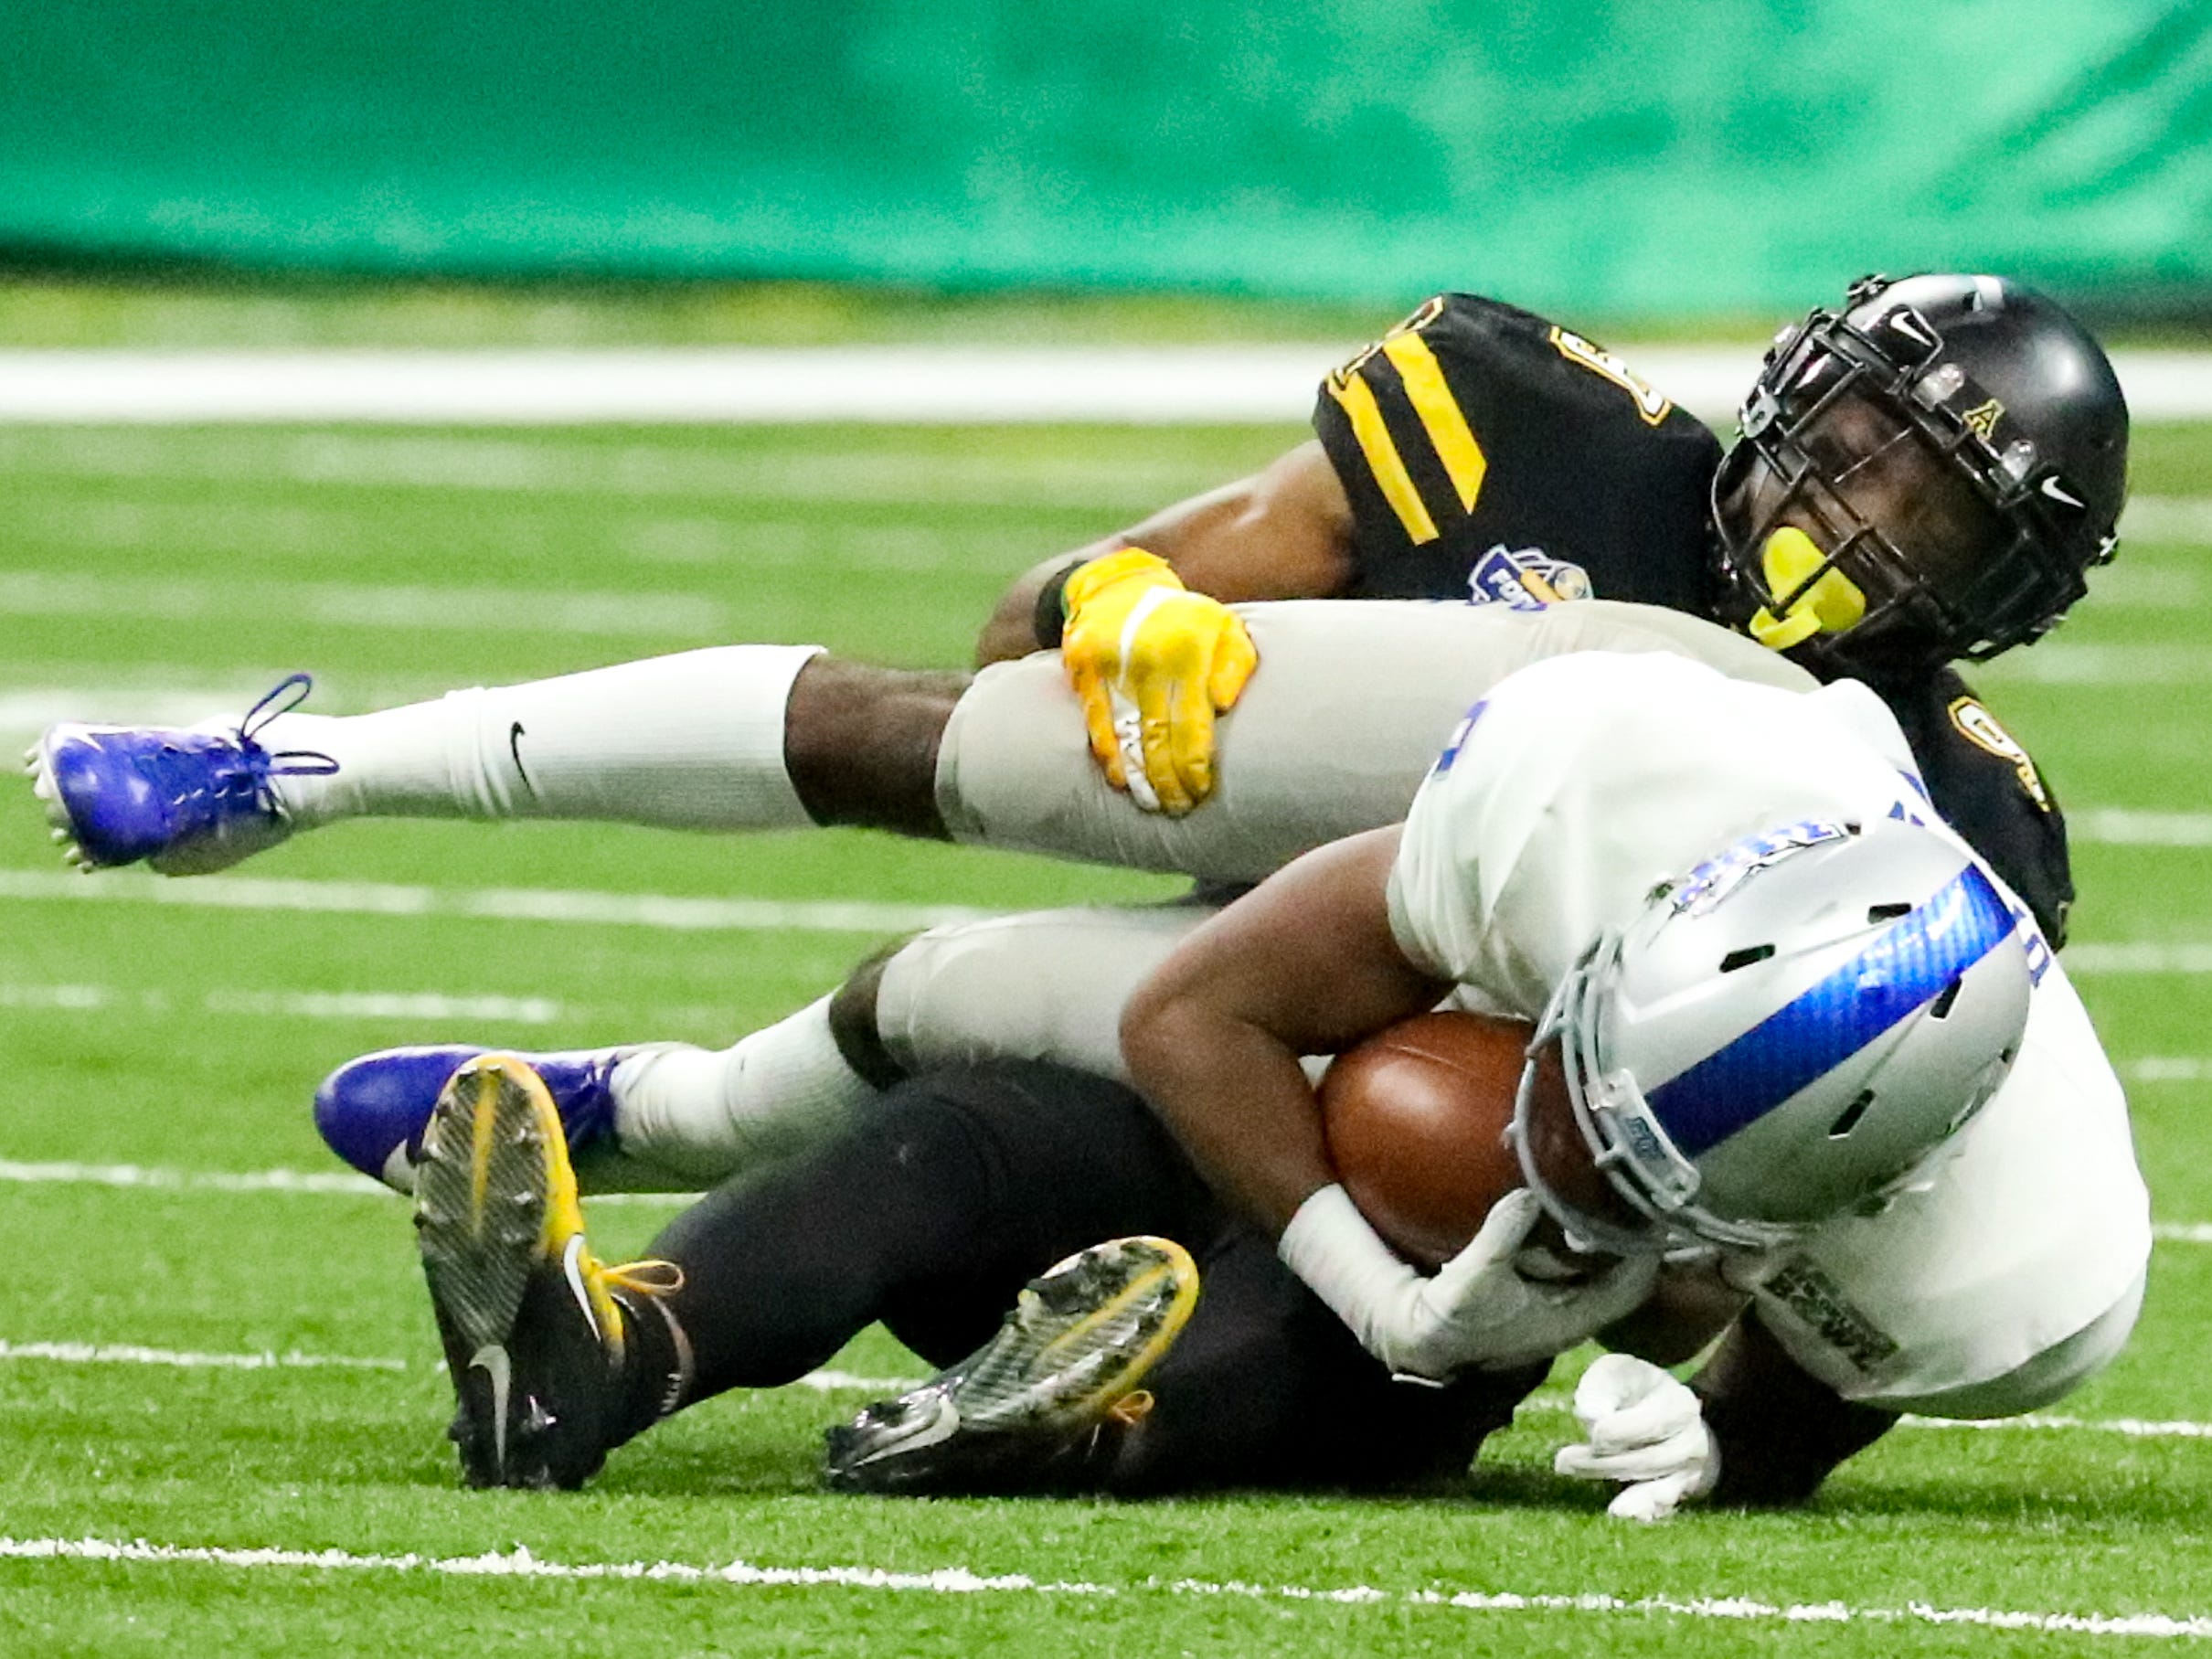 Middle Tennessee Blue Raiders wide receiver Isiah Upton (9) is tackled by Appalachian State Mountaineers defensive back Austin Exford (9) during the first half at the Mercedes-Benz Superdome Saturday, Dec. 15, 2018, in New Orleans, La.